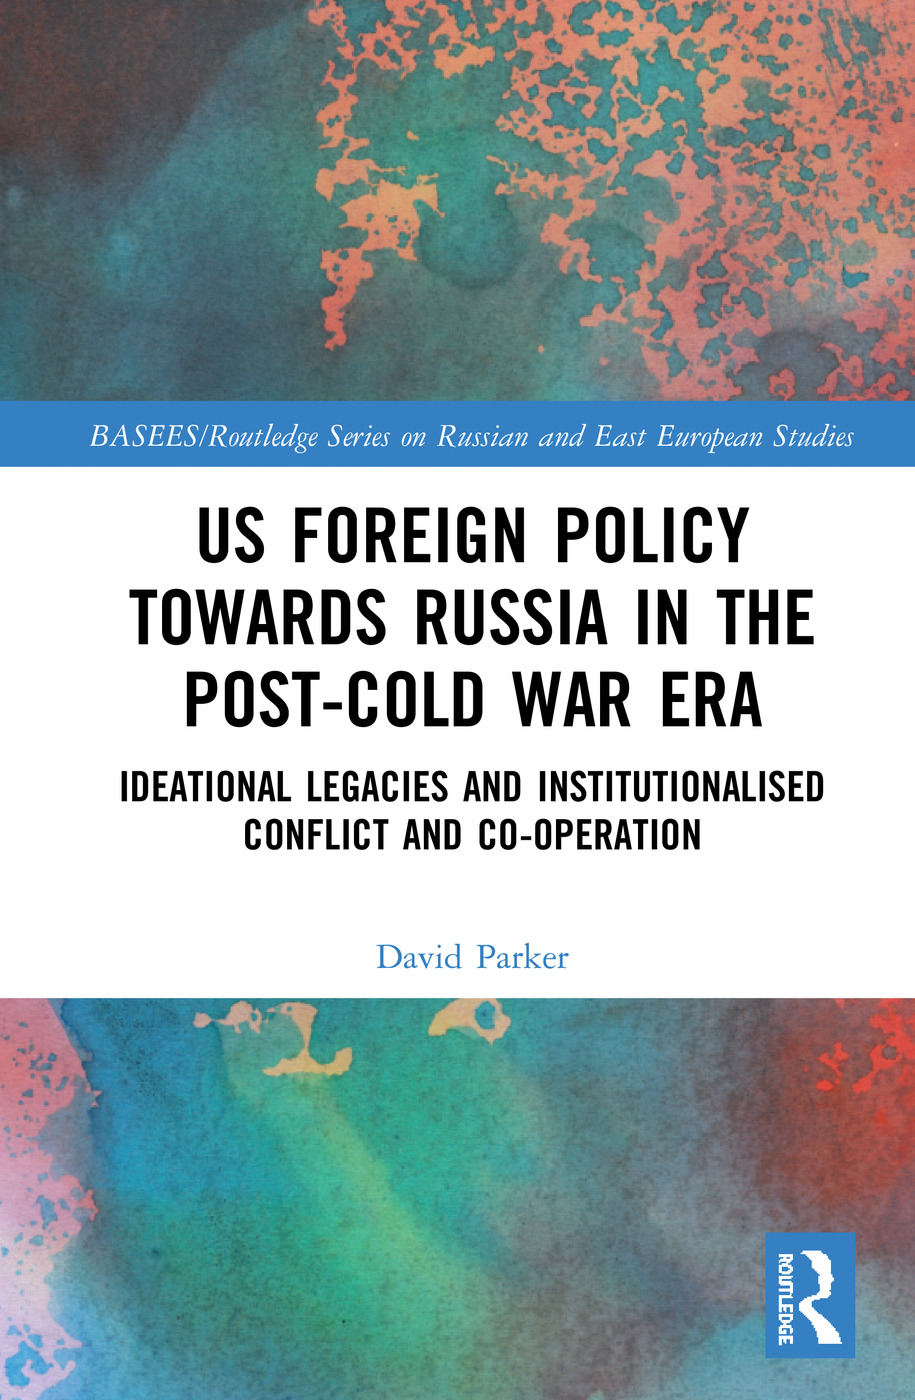 US Foreign Policy Towards Russia in the Post-Cold War Era: Ideational Legacies and Institutionalised Conflict and Co-operation book cover